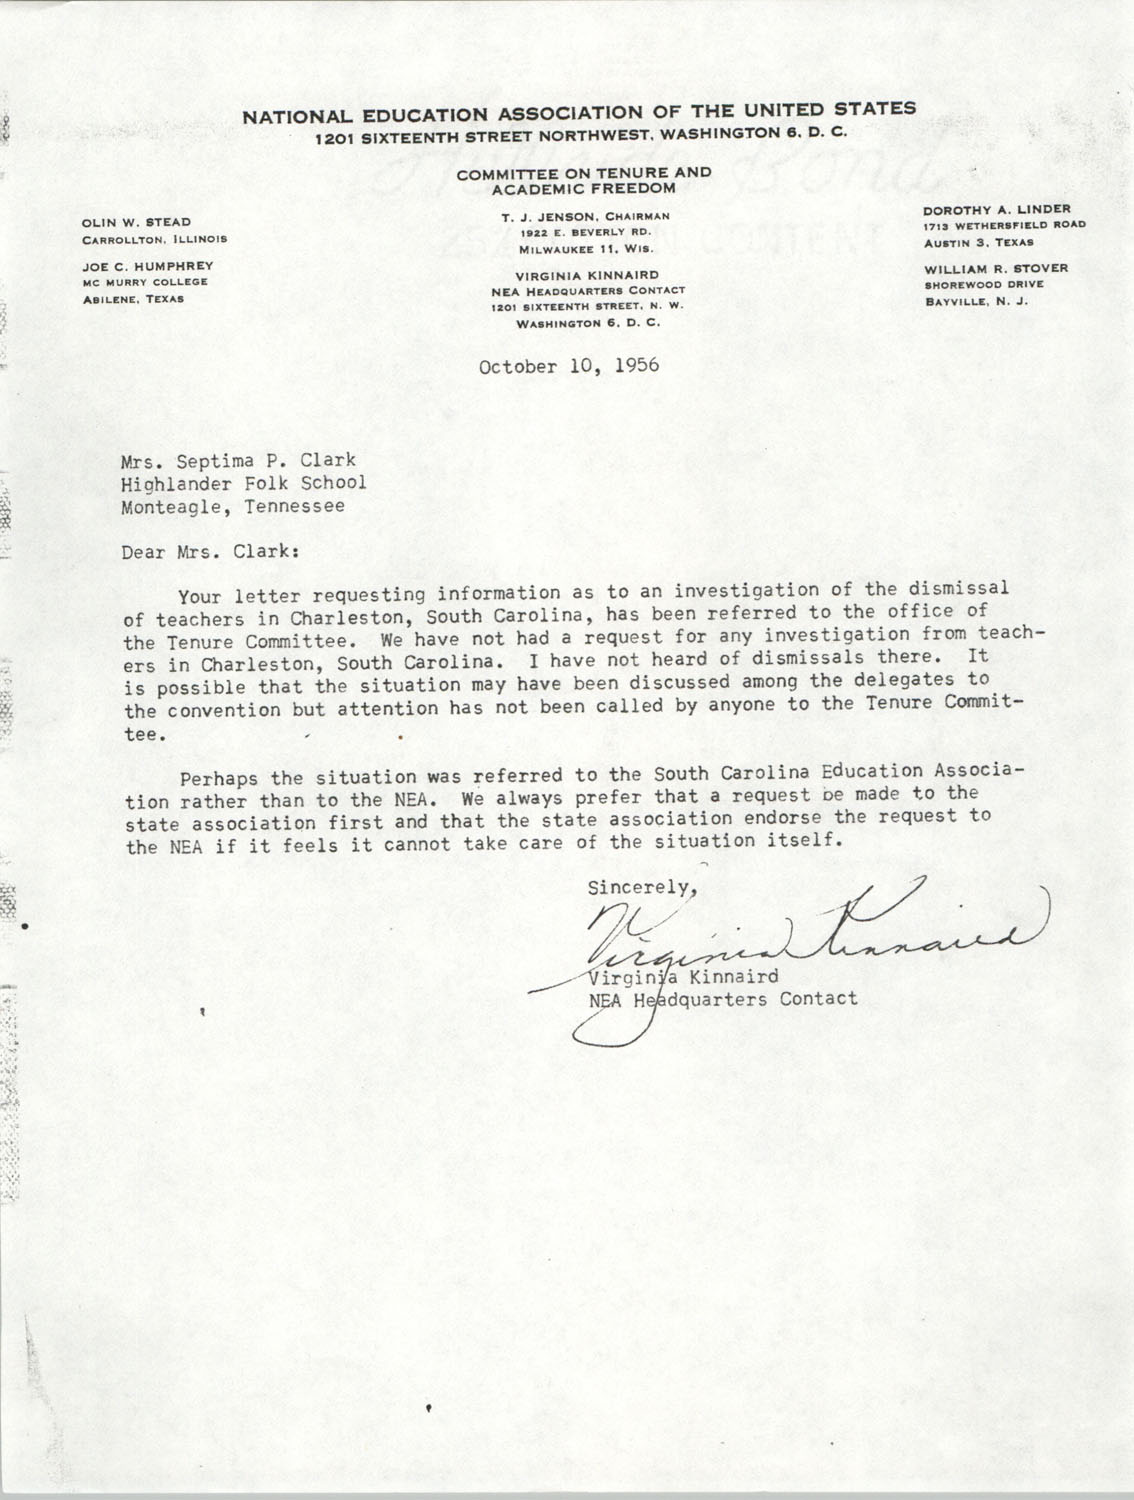 Letter from Virginia Kinnaird to Septima P. Clark, October 10, 1956